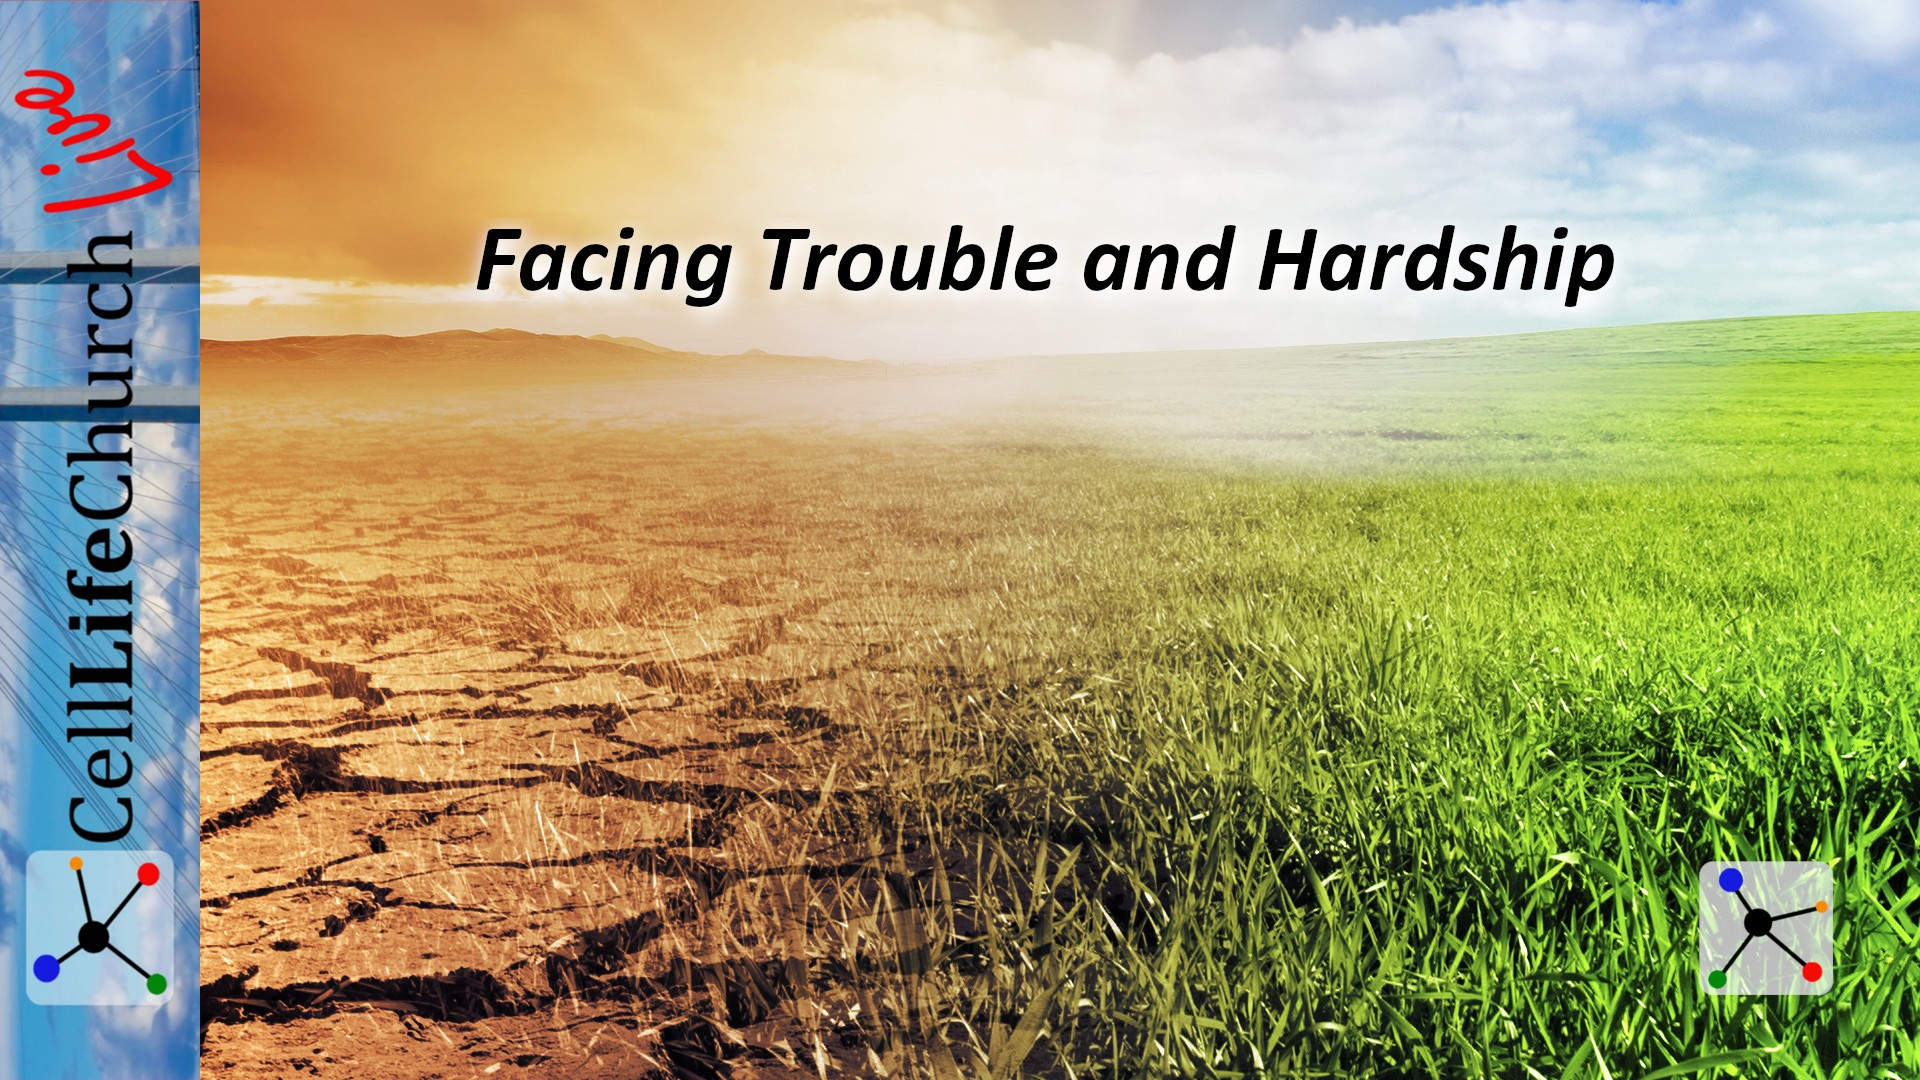 Facing Trouble and Hardship